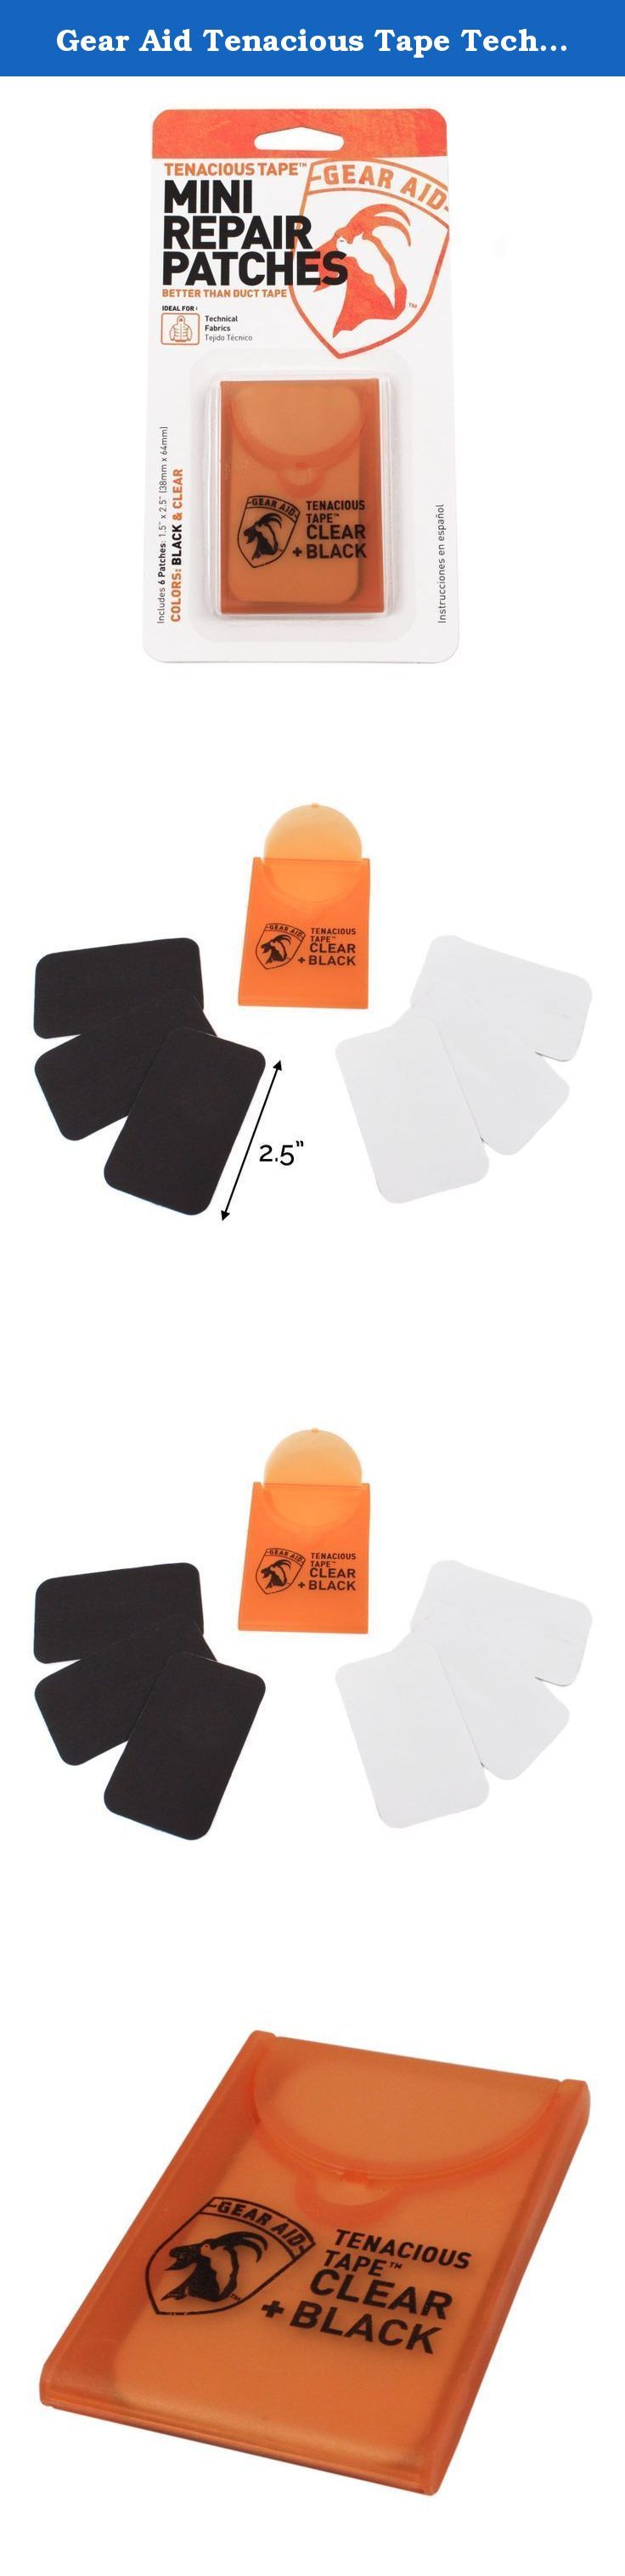 Gear Aid Tenacious Tape Technical Fabric Mini Repair Patches Black and Clear. The Gear Aid Tenacious Tape mini repair patches are a super aggressive adhesive for long-lasting repairs of all technical fabrics. They are sized to fit most down baffles and with their compact case they are easy to take on any trip, or keep in any emergency kit! The patches are great for tents, tarps, rubber boots, sleeping bags, down jackets, boat covers, inflatables, awnings, and much more! Package Includes:...